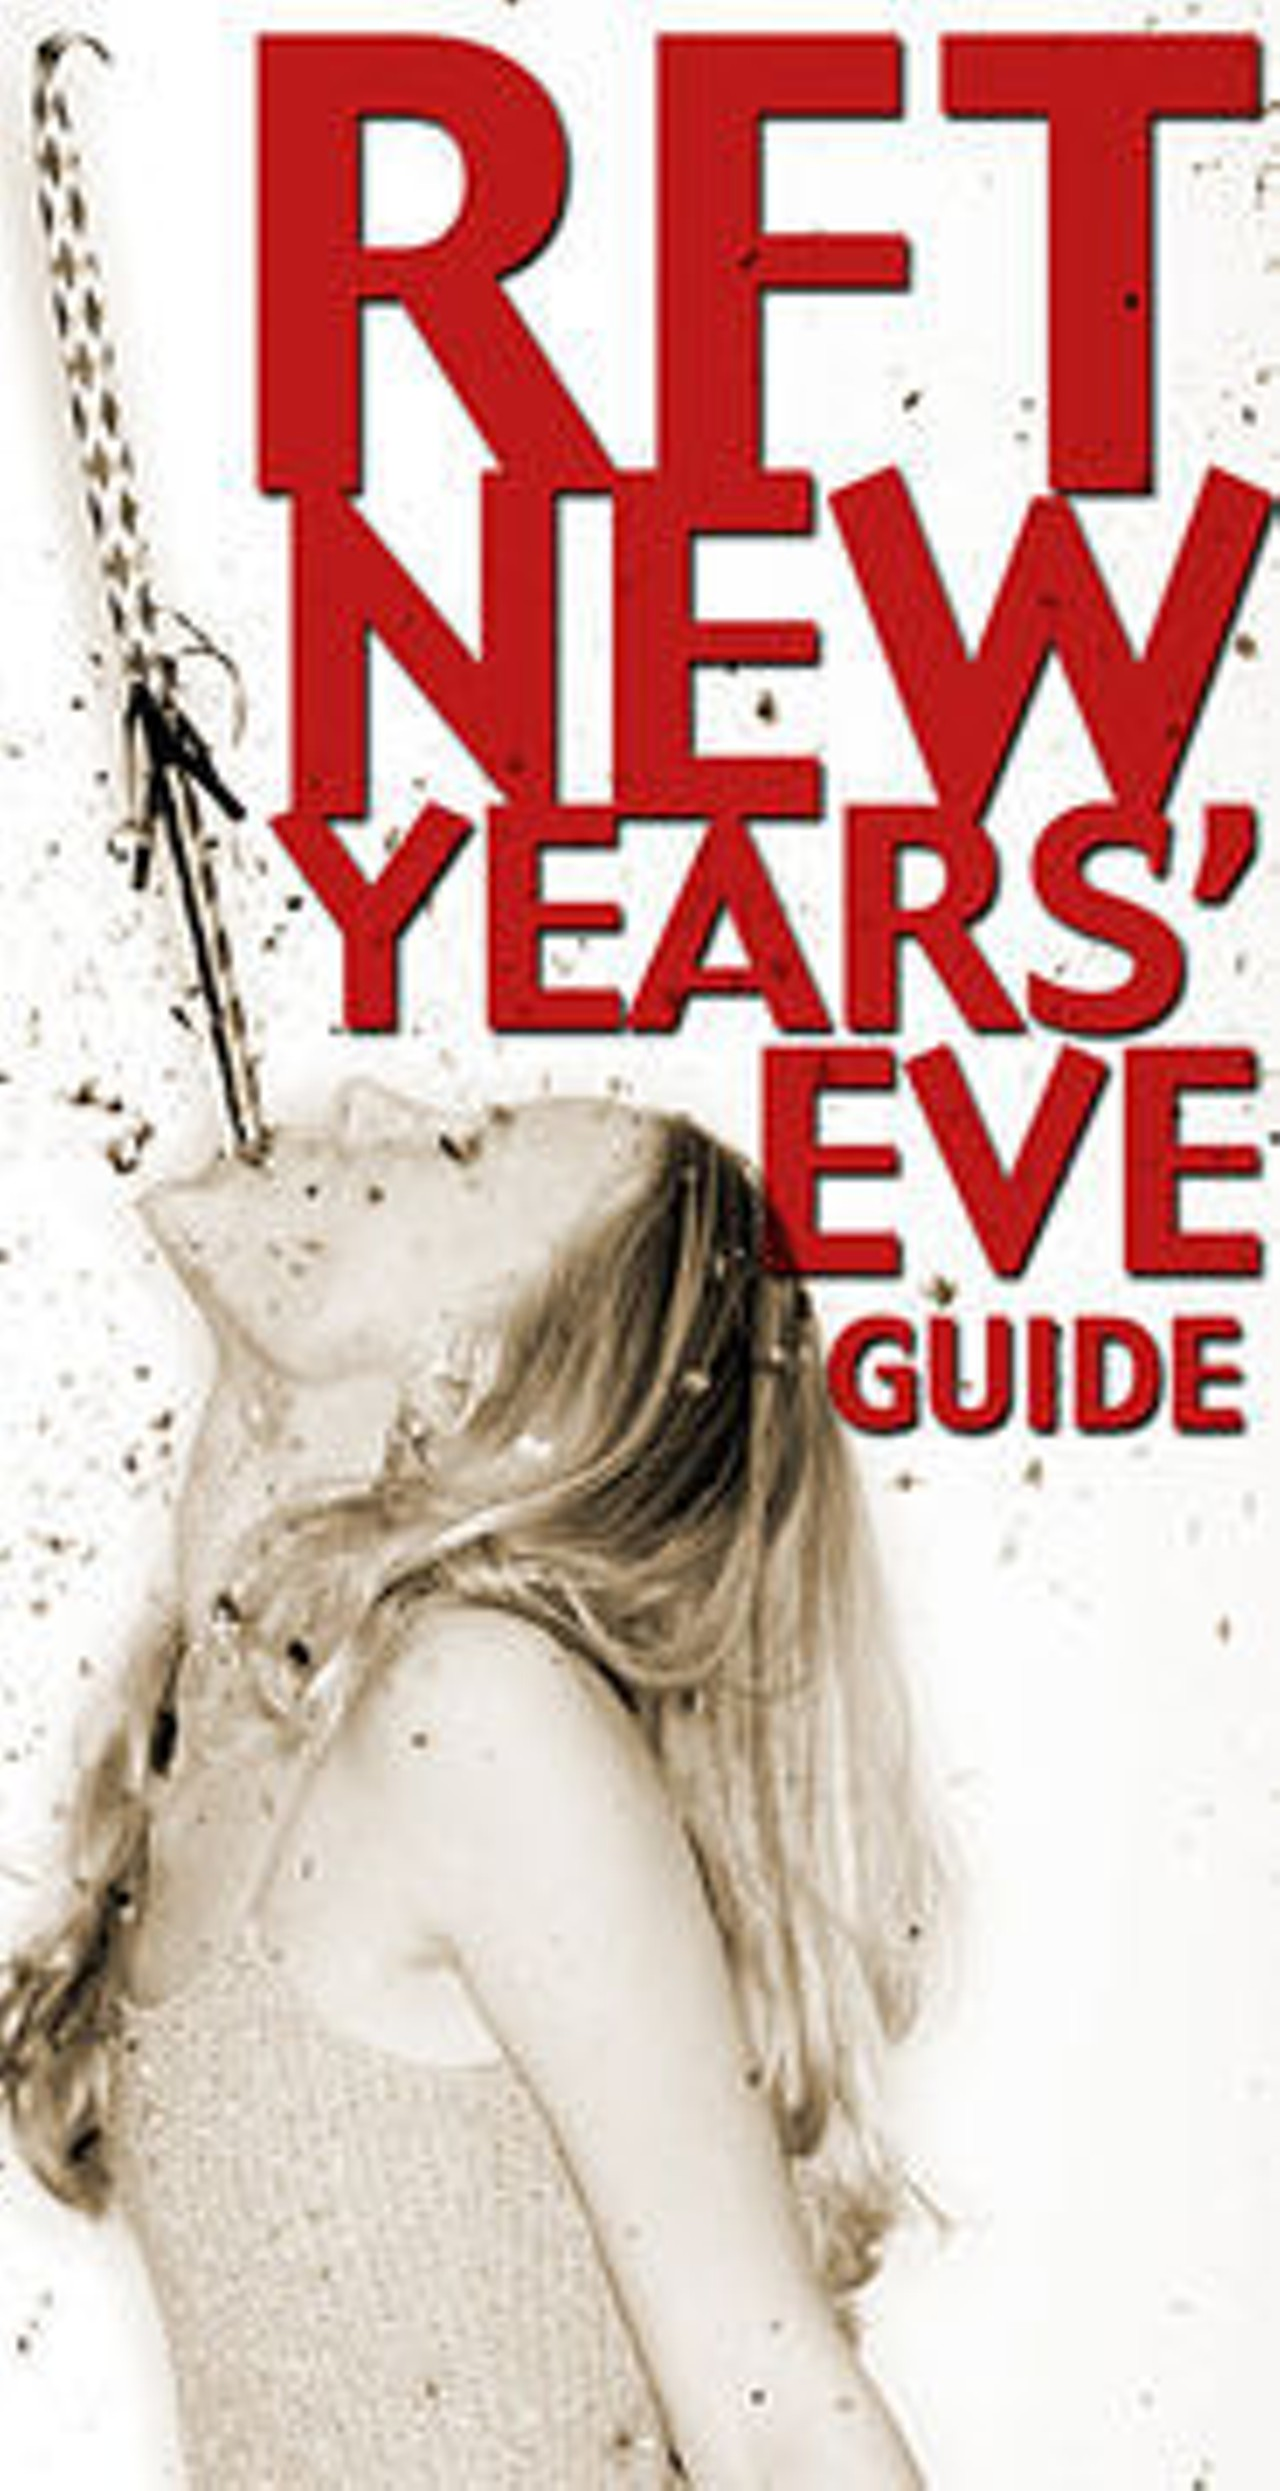 New years eve guide night day st louis news and events new years eve listings malvernweather Gallery